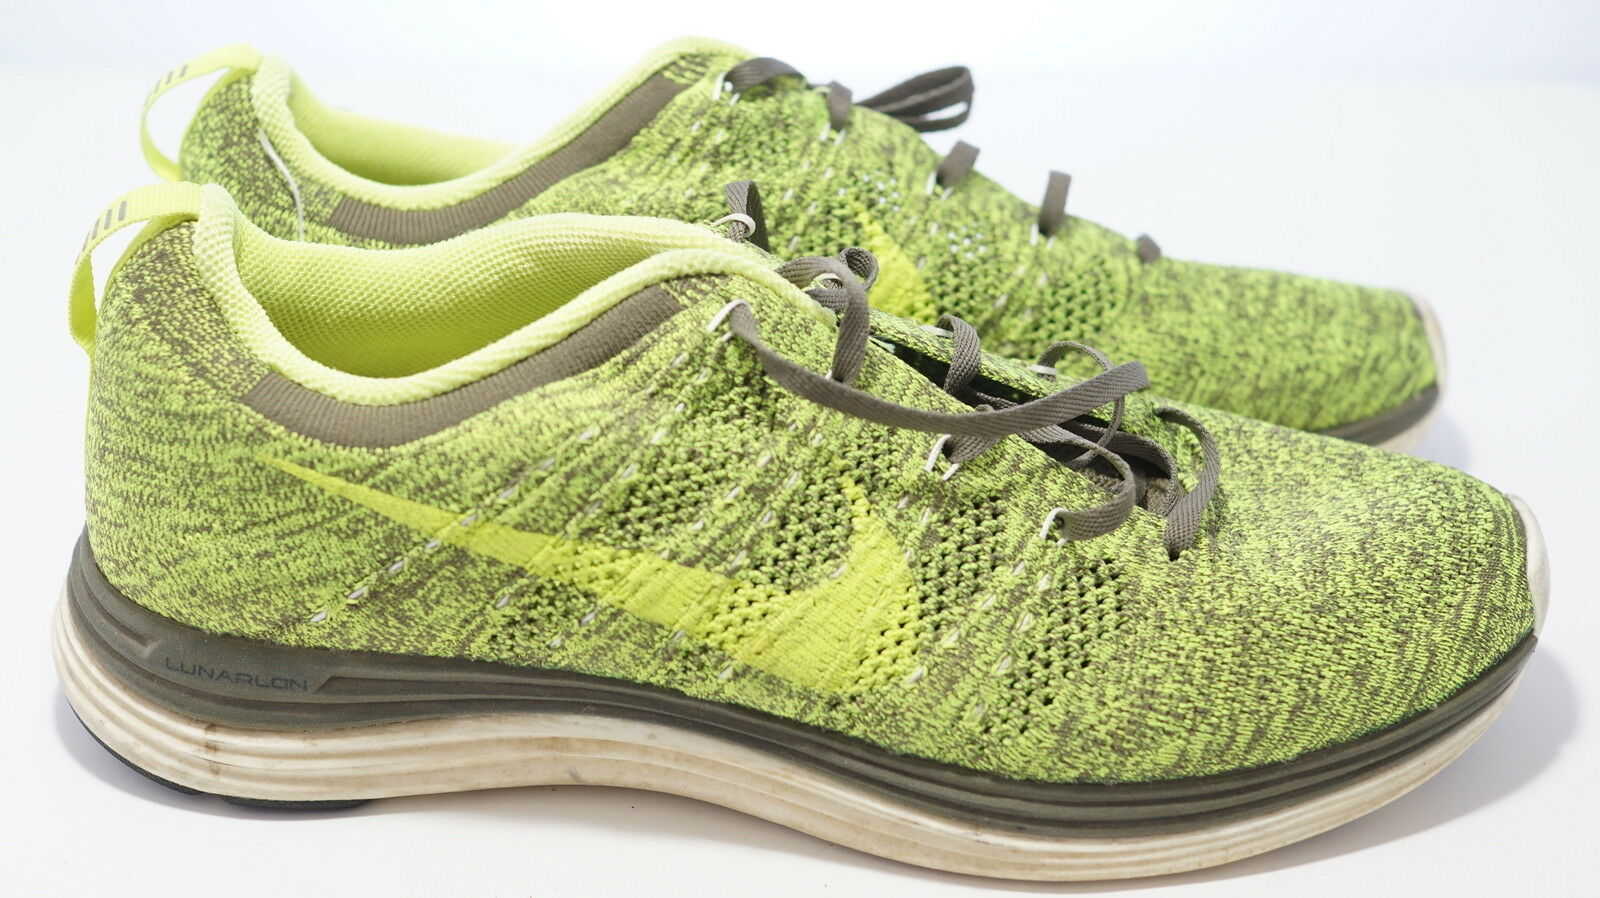 Men's Nike Flyknit Lunar 1 running shoes sneakers size 10.5 Cheap and beautiful fashion